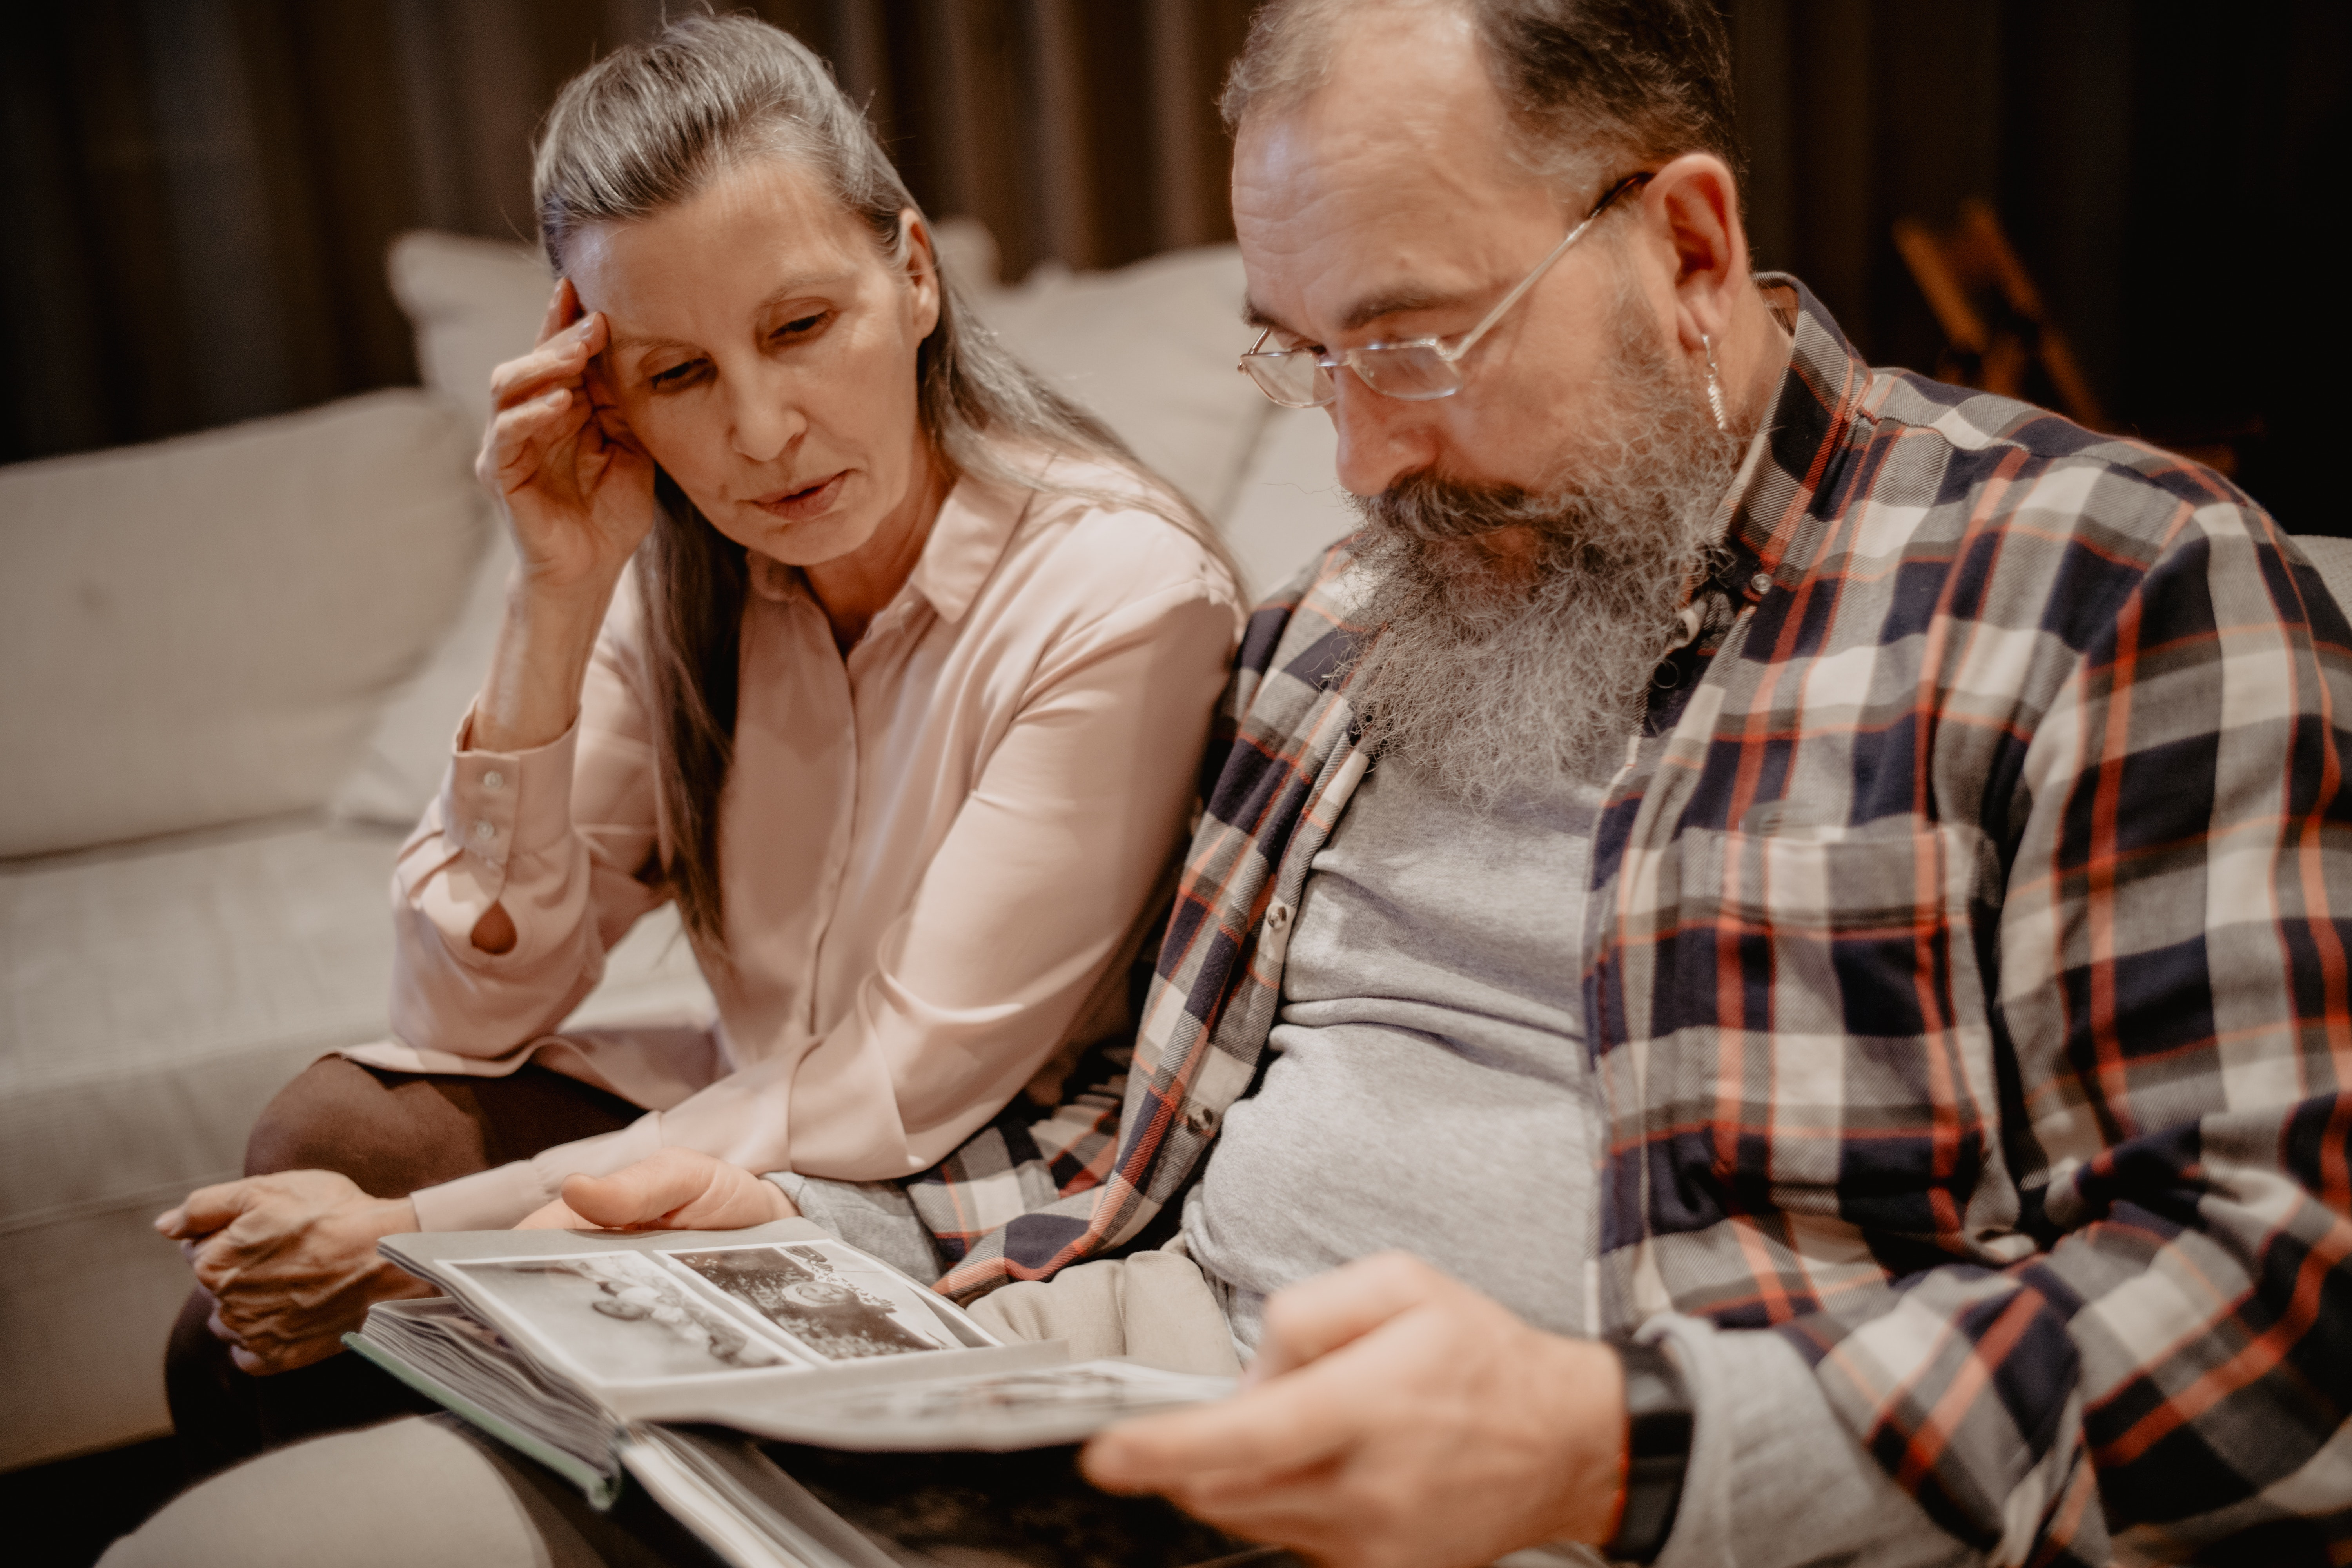 Tax Planning for Retirement: What Happens When Your Spouse Dies?